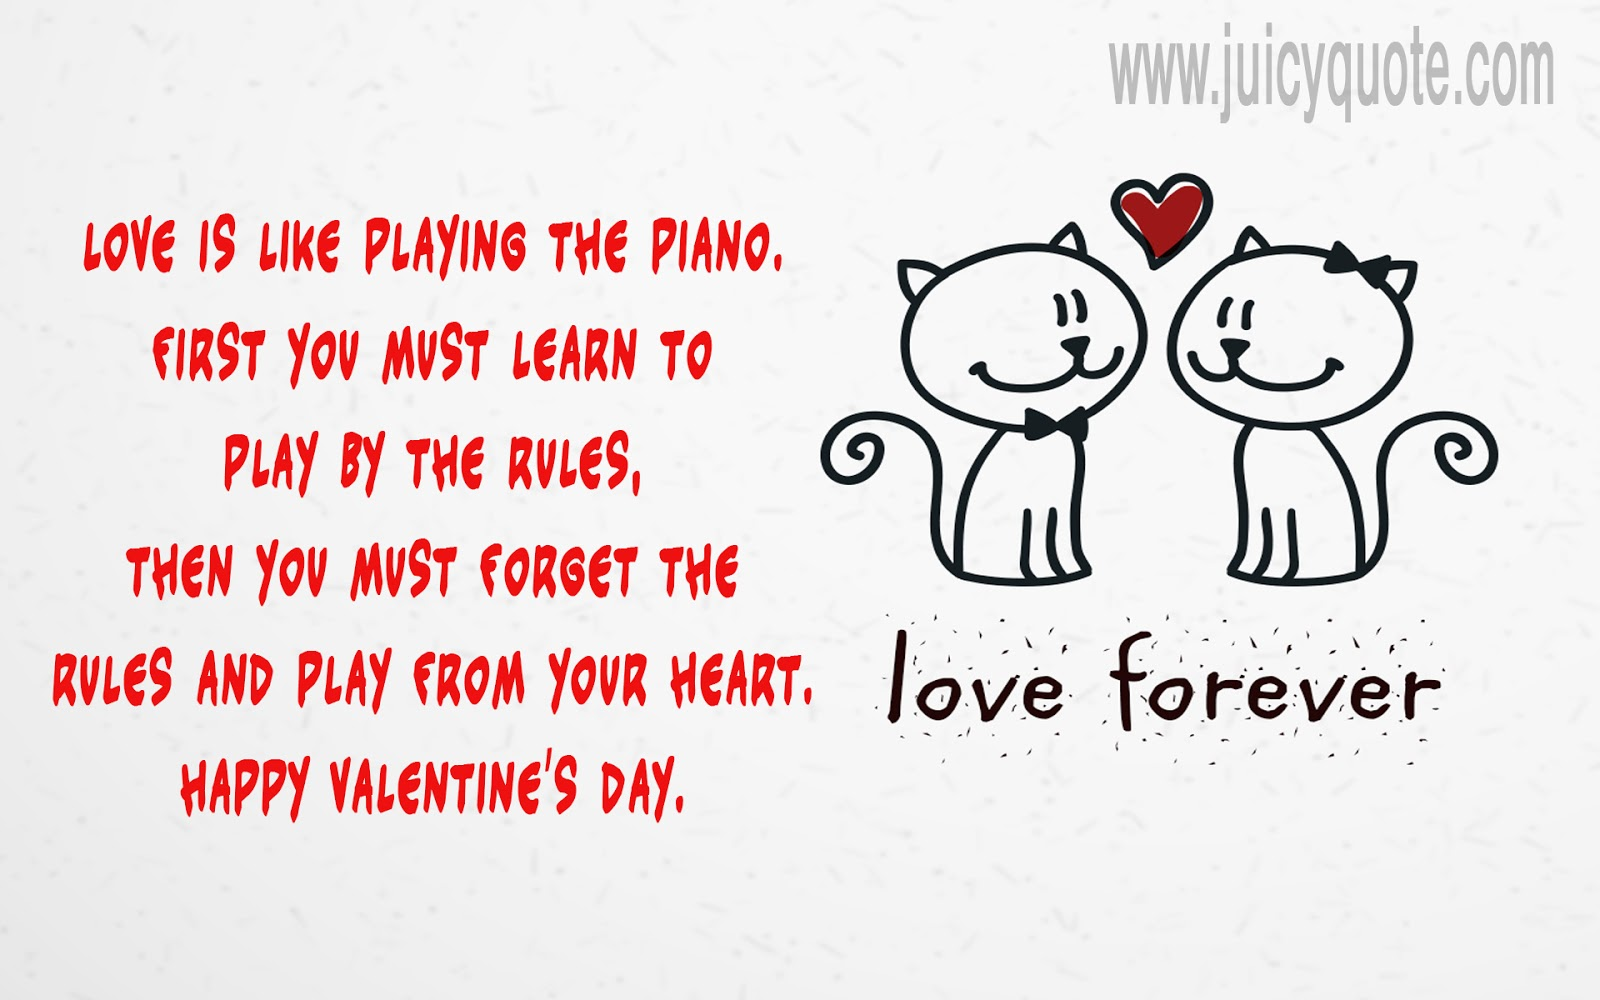 Love Quotes For Valentines Day Beautiful Valentine's Day Quotes And Messages For The Husband